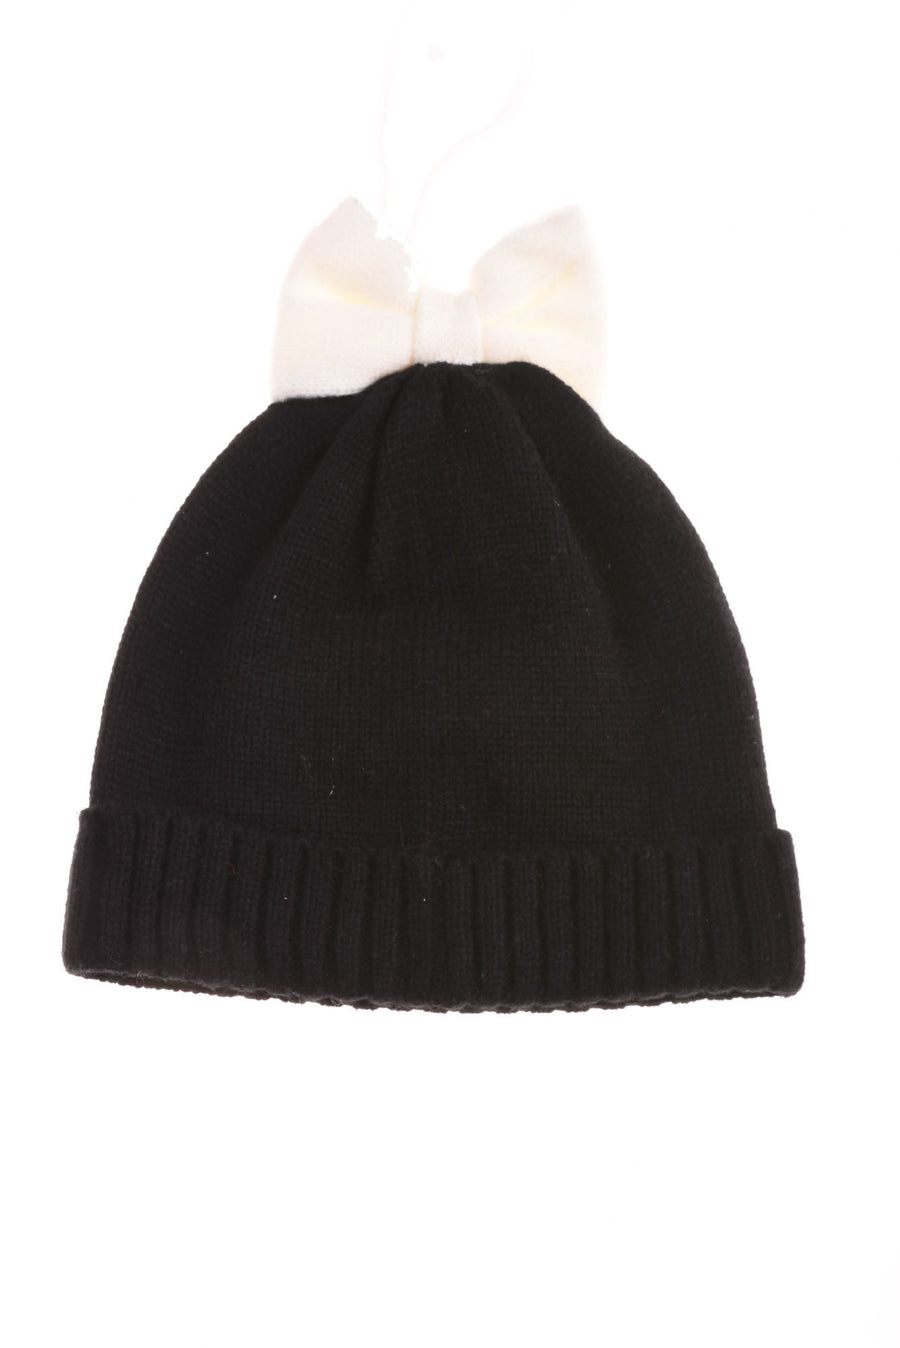 USED Kate Spade Women's Hat N/A Black & White